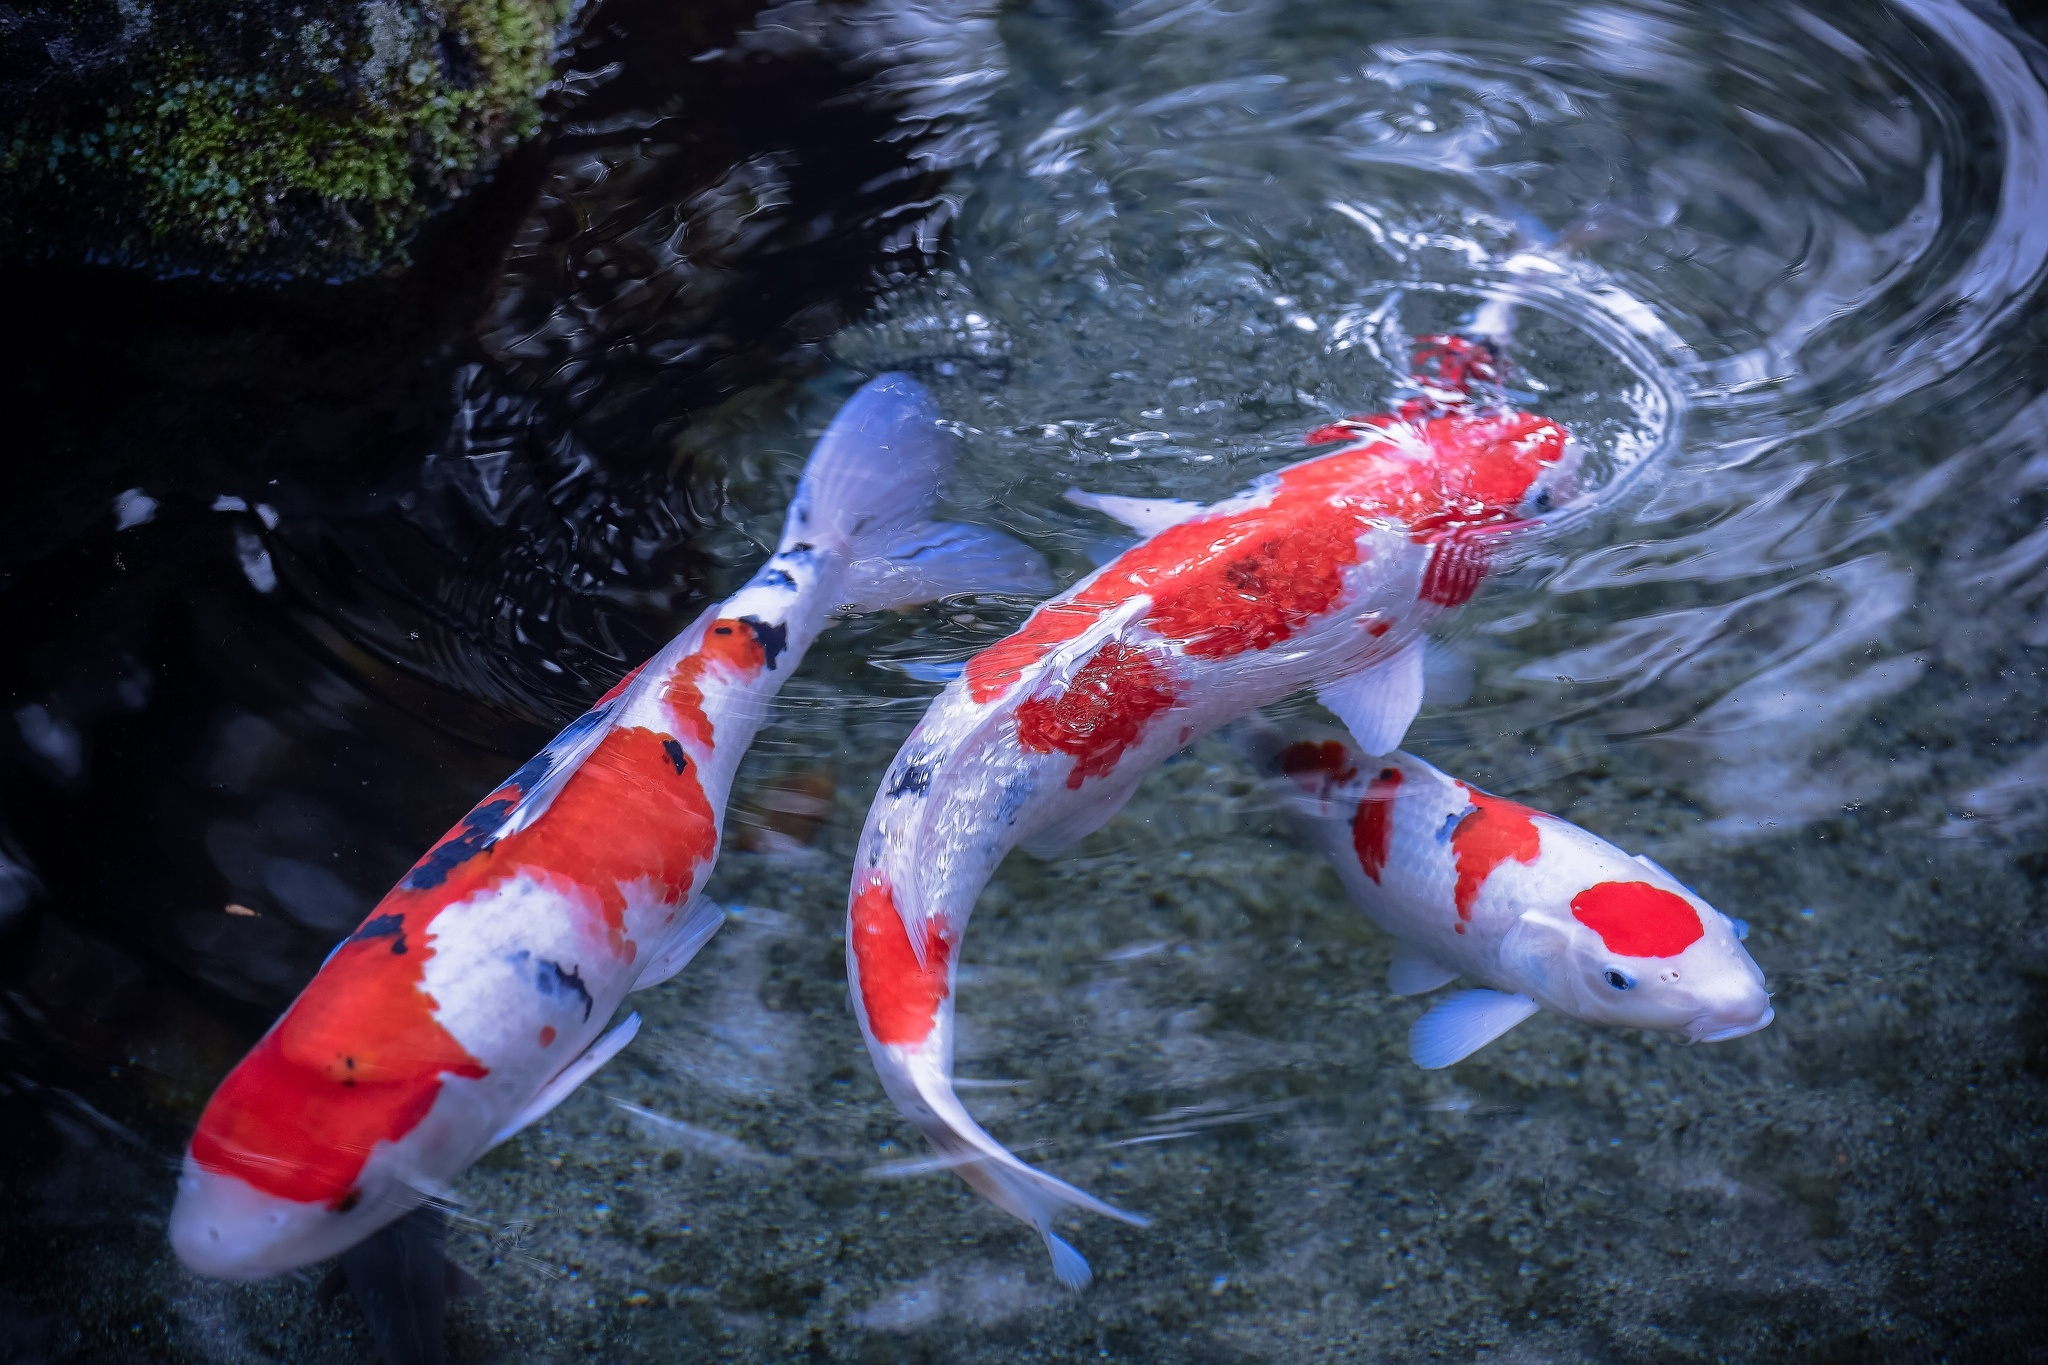 Koi hd wallpaper background image 2048x1365 id - Carp wallpaper iphone ...